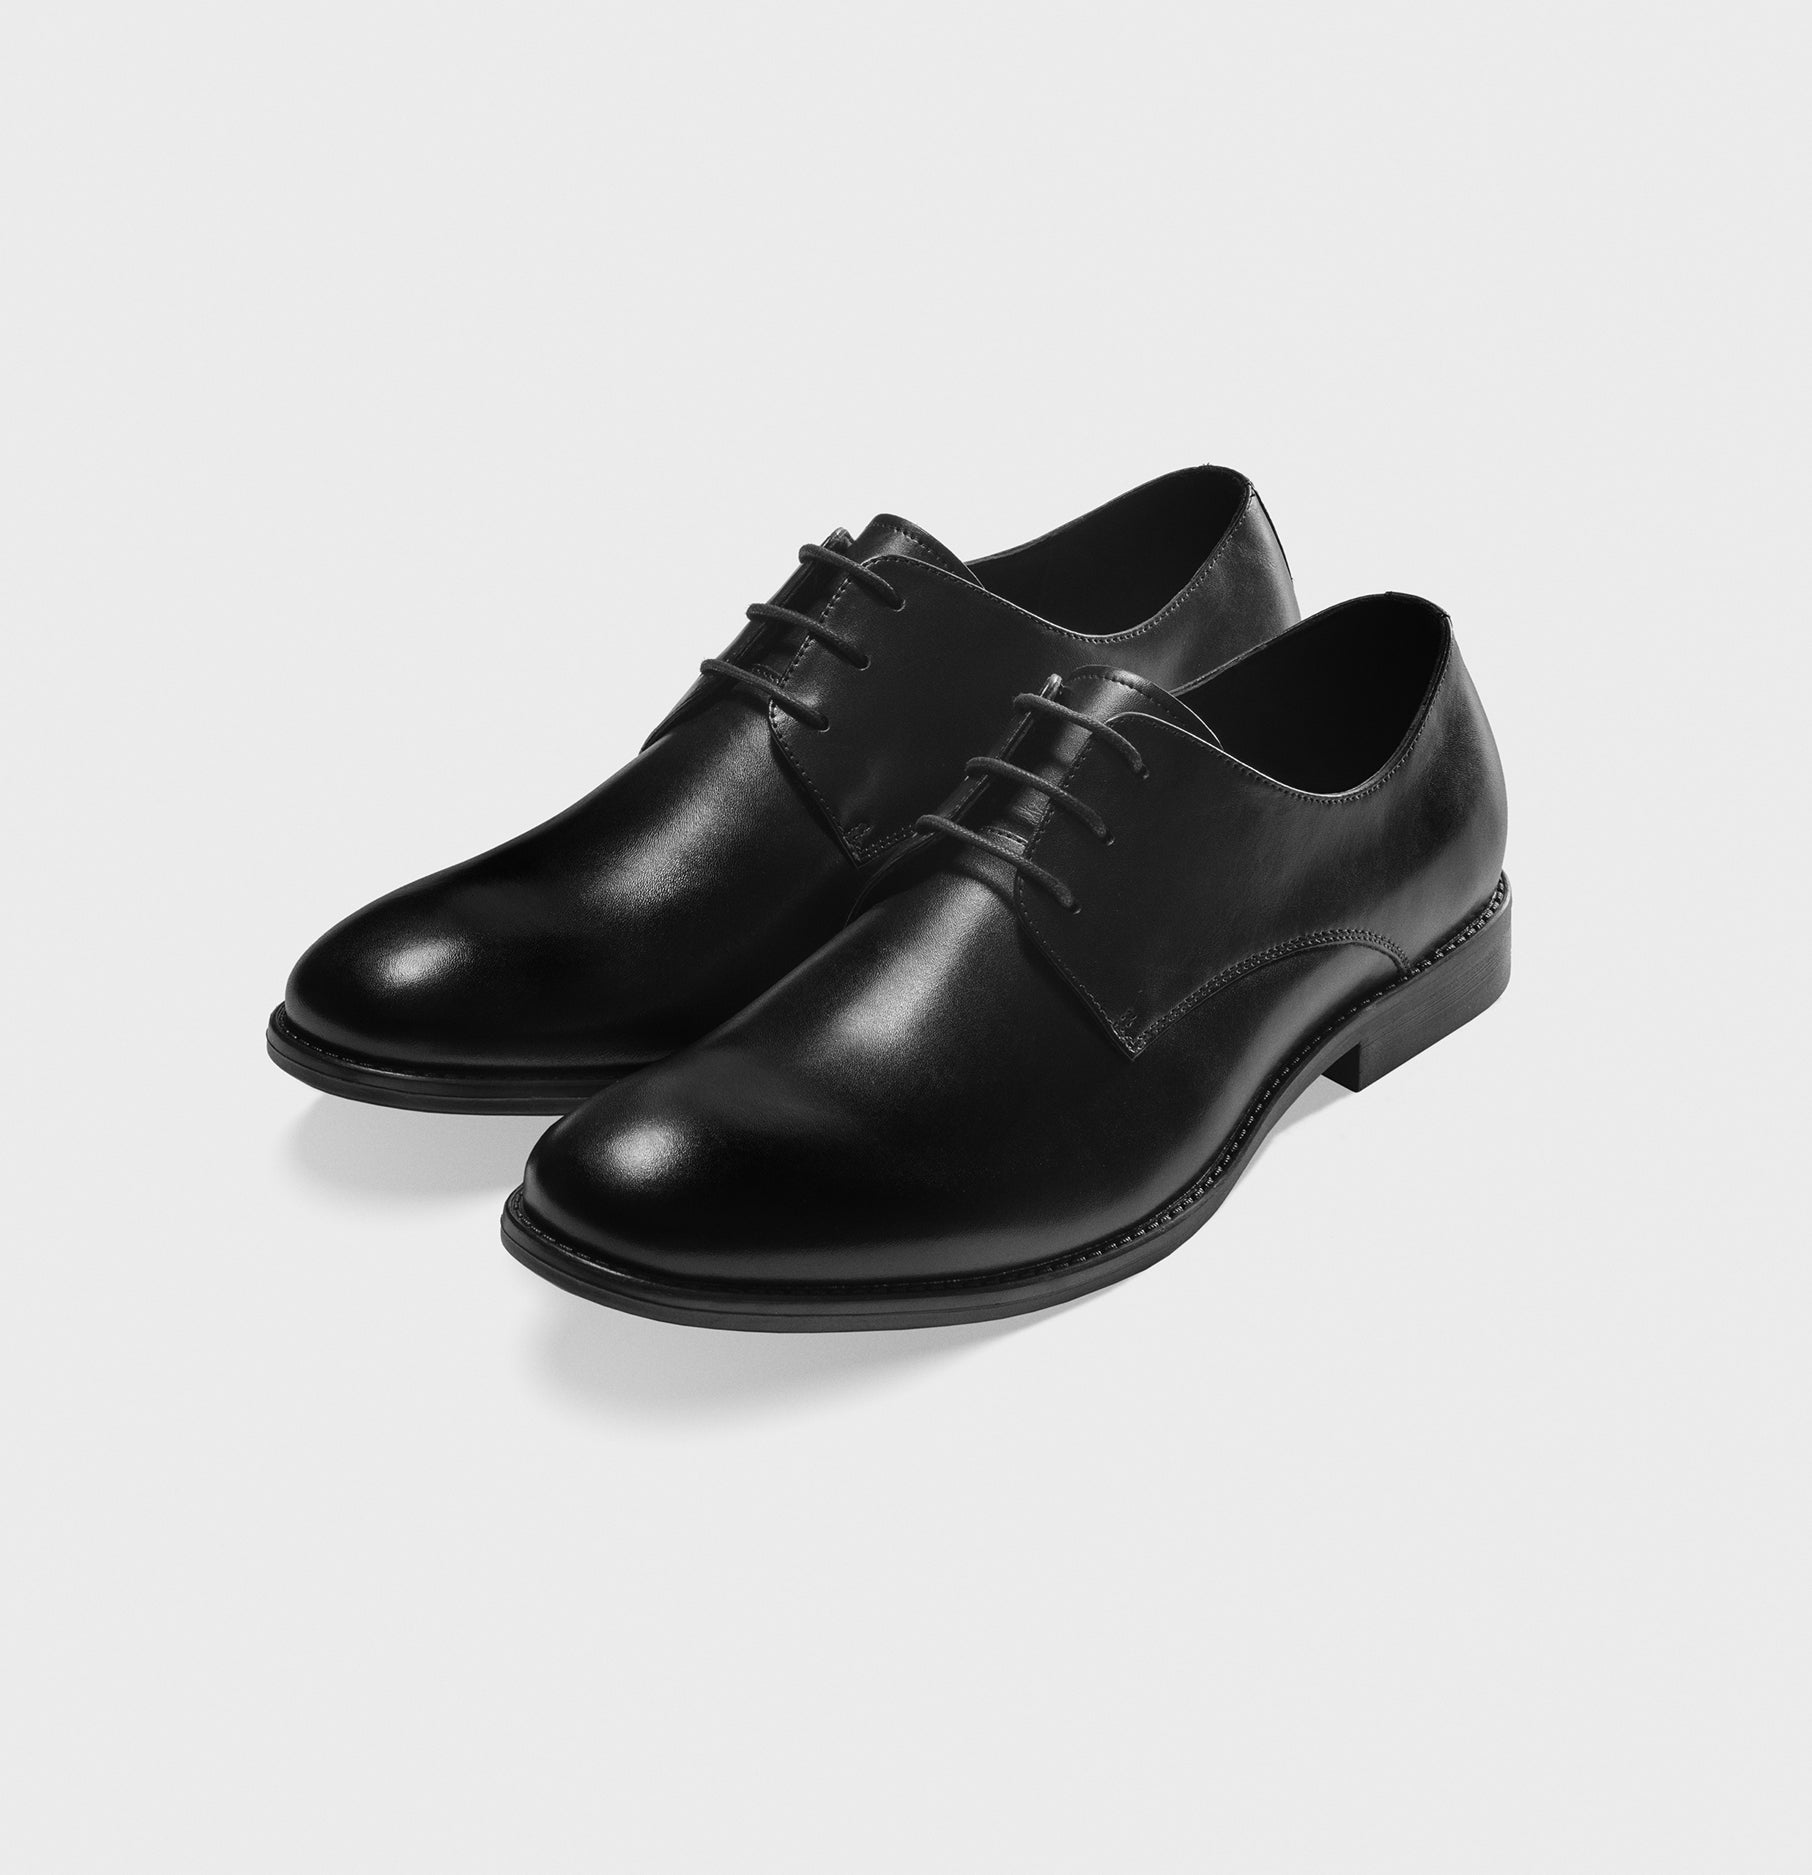 Black Leather Shoes | The Black Tux